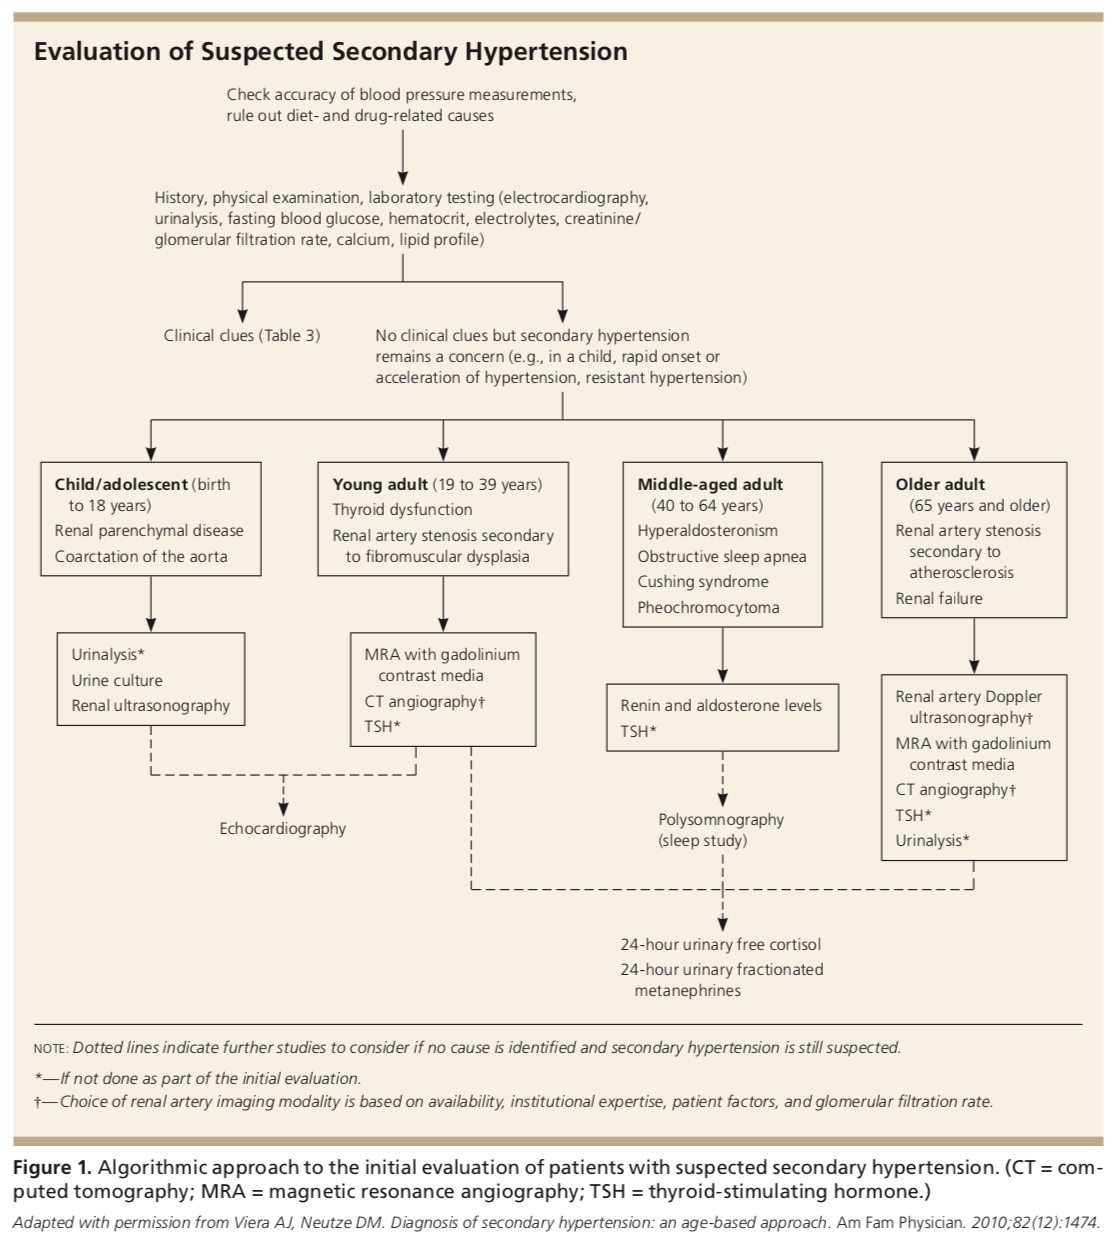 evaluation of suspected secondary hypertension